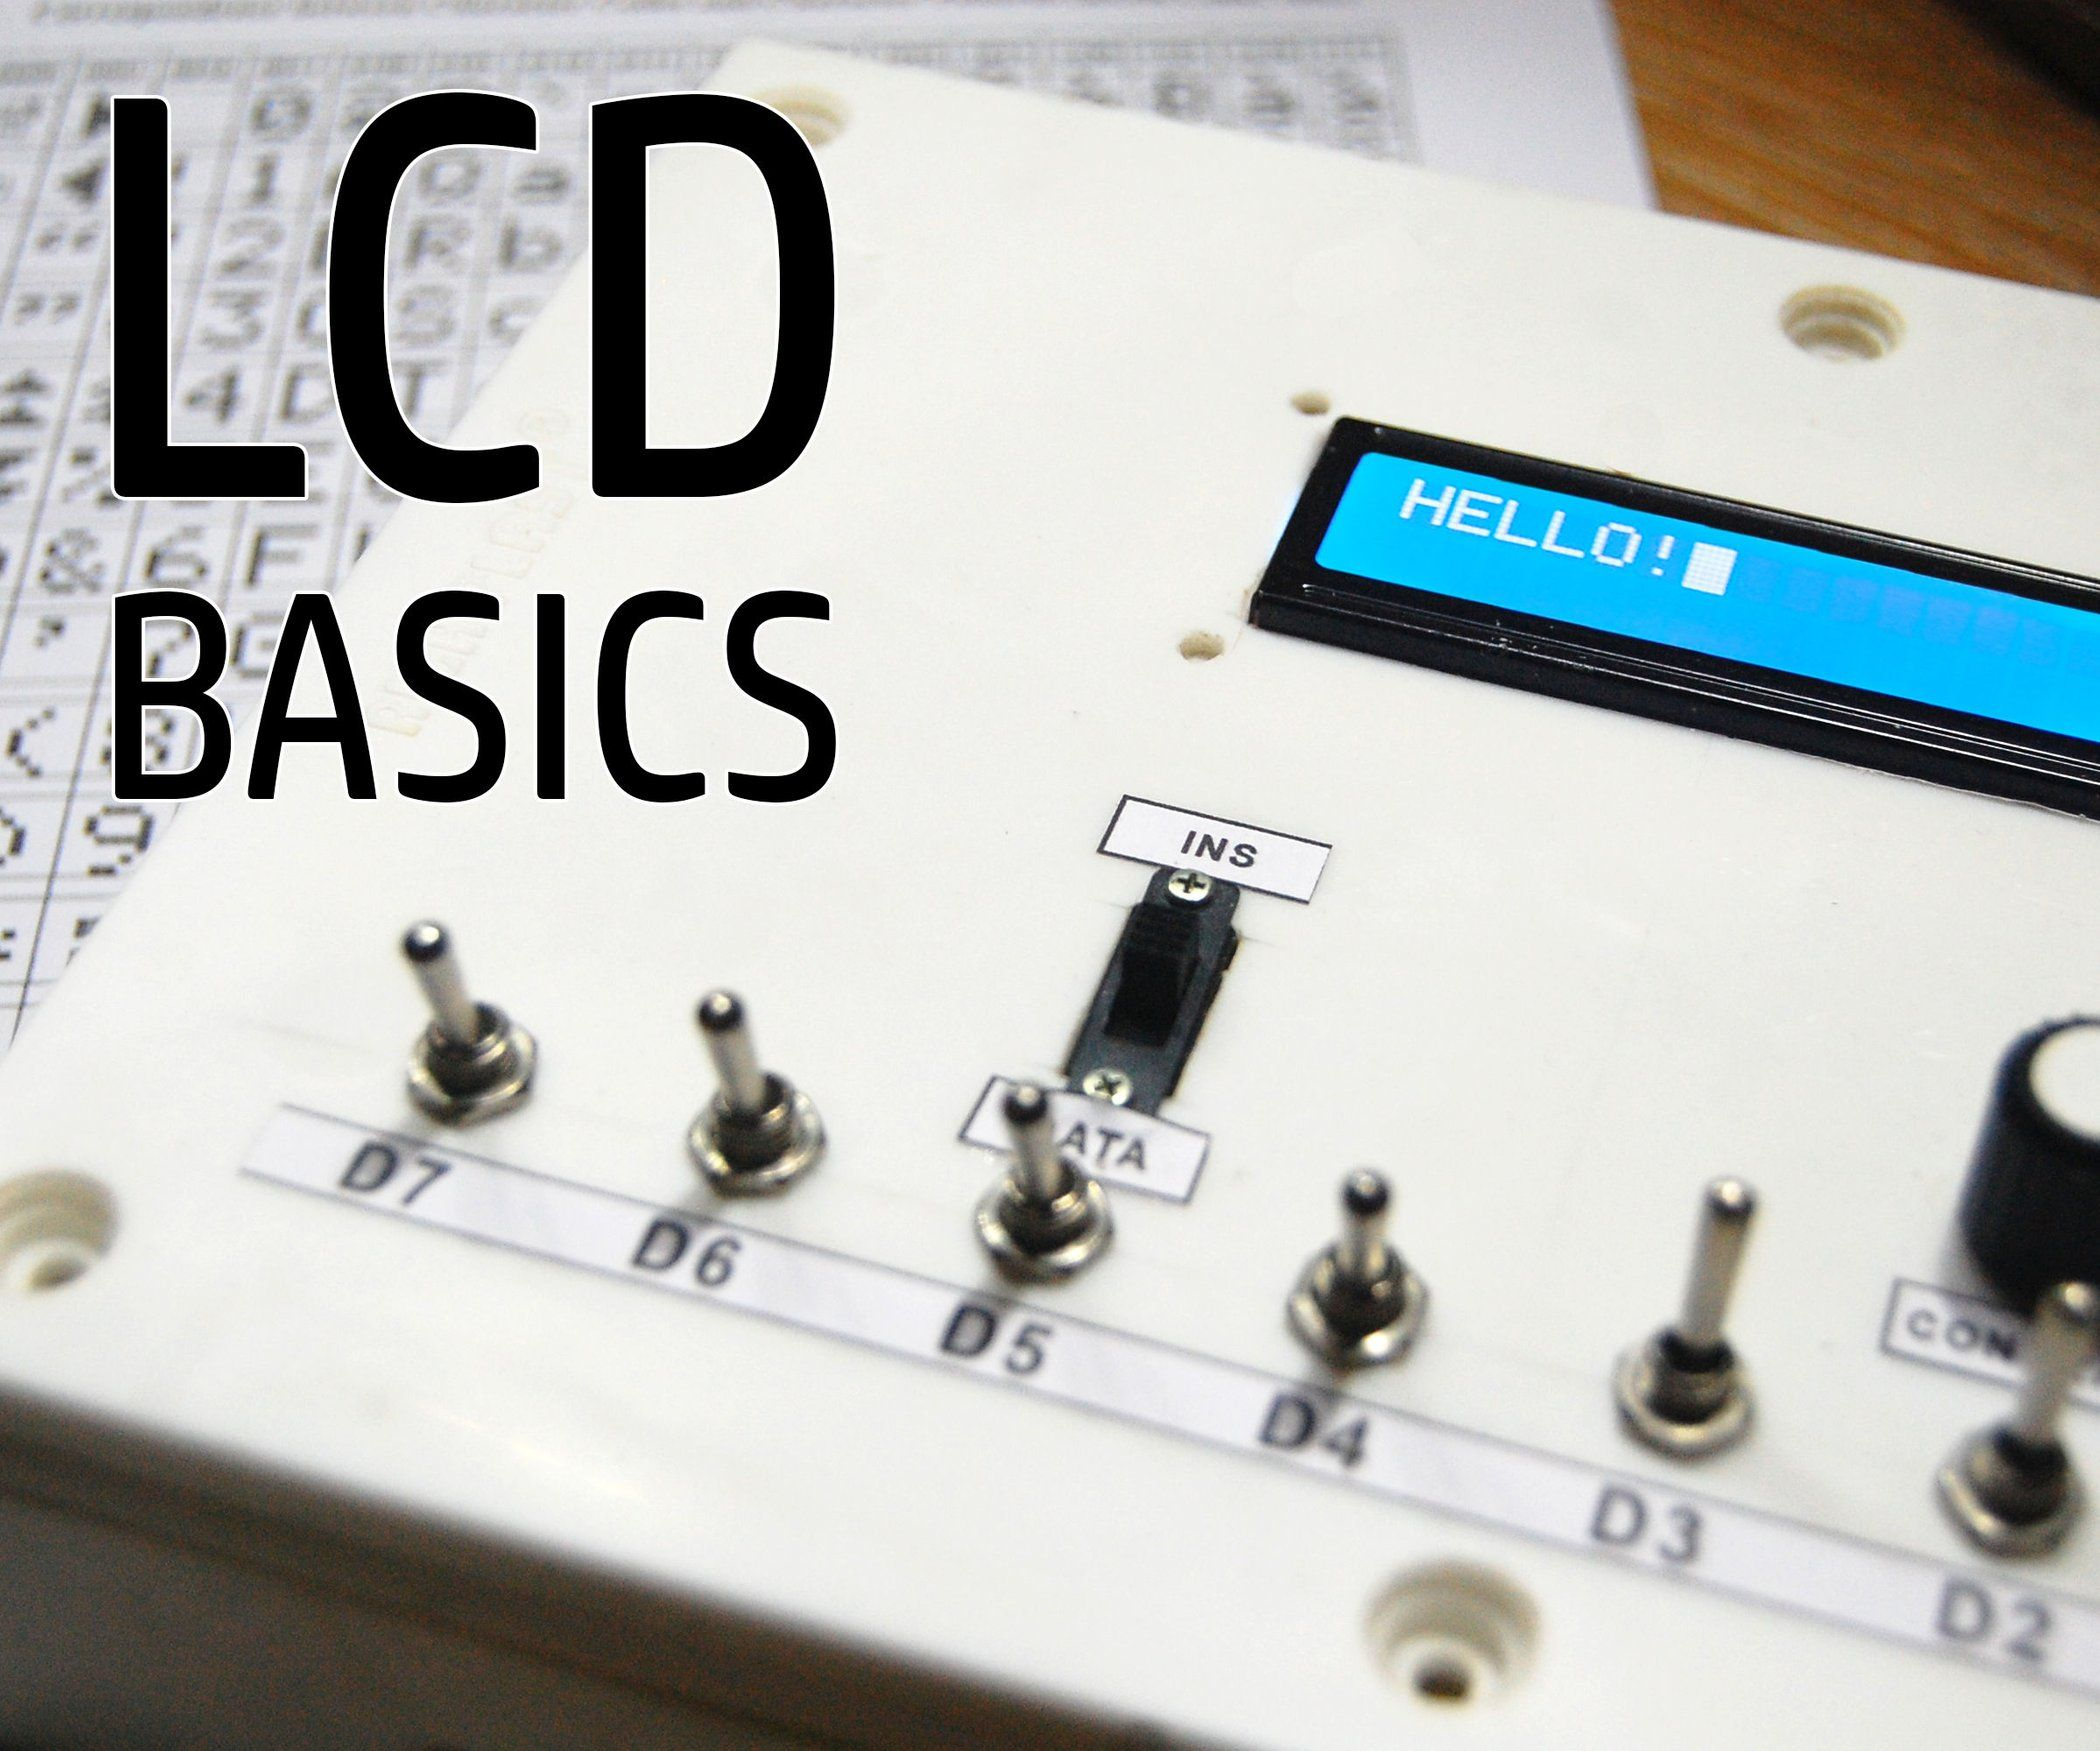 LCD Trainer Kit | Crafting | Arduino, Electronics projects